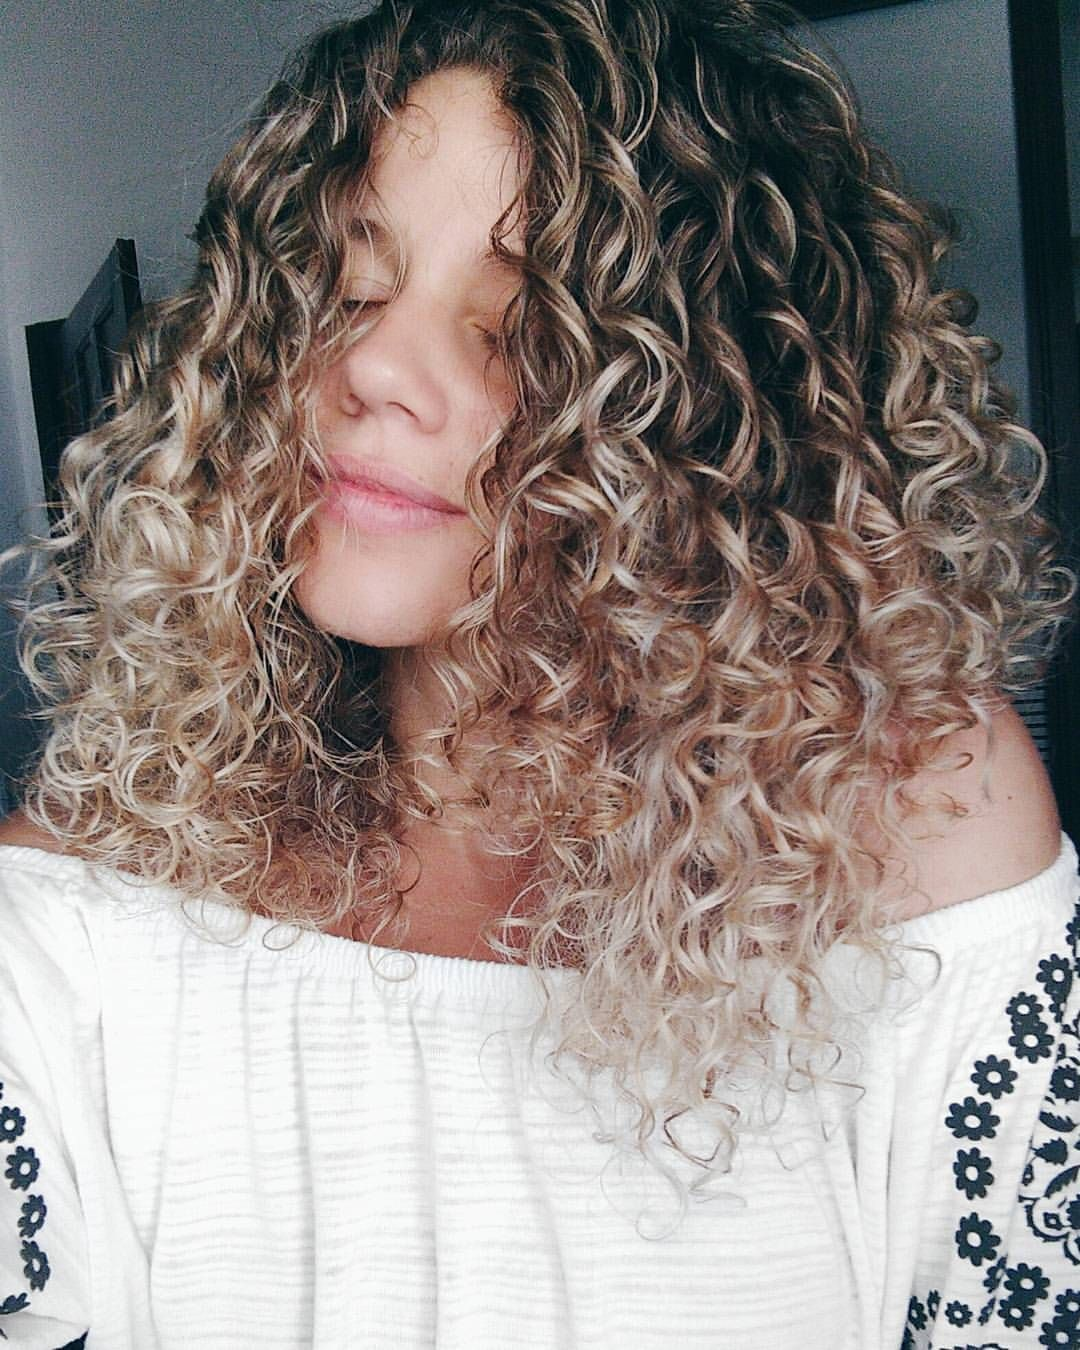 pinterest: infinite r. #curly #cachos #cabelo | hair in 2019